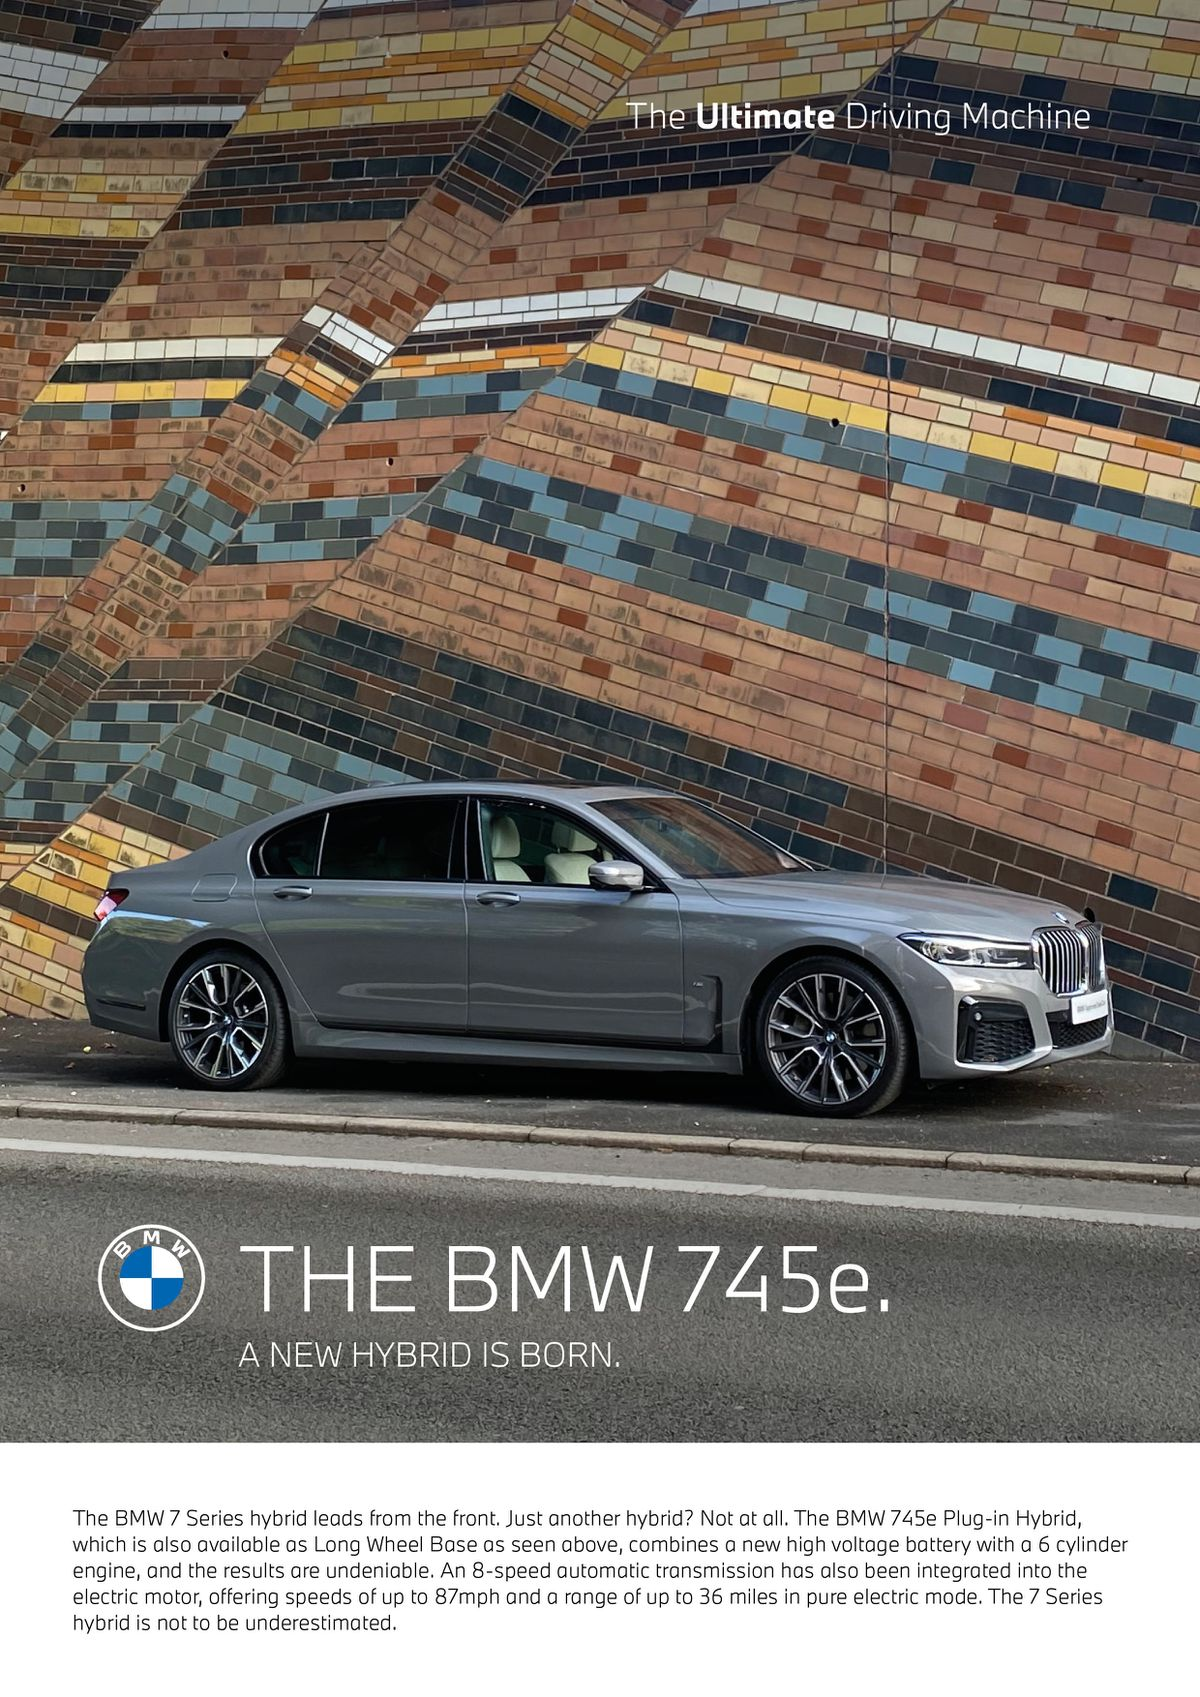 The new recreation of the classic BMW poster